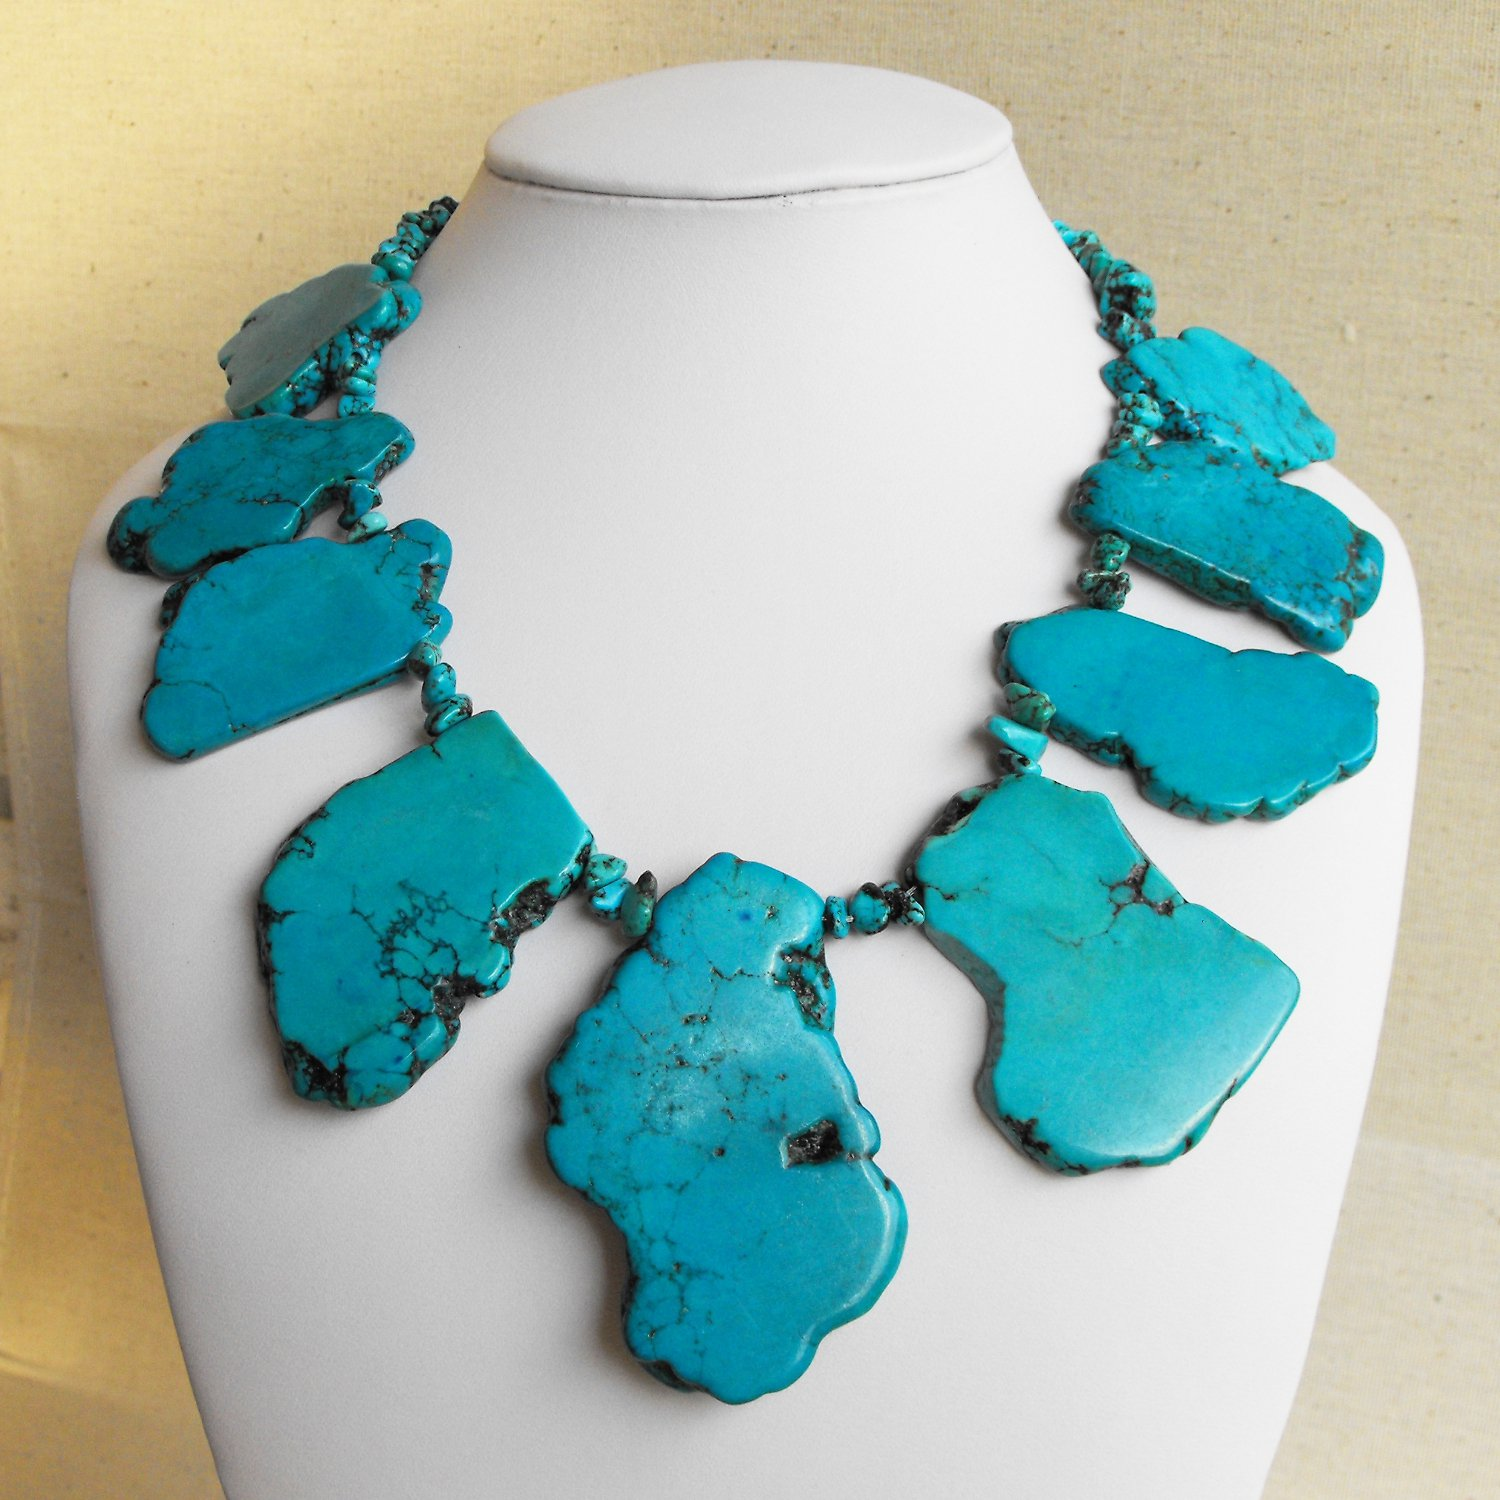 Emily III - Super Chunky Natural Freeform Turquoise Slab Statement Necklace